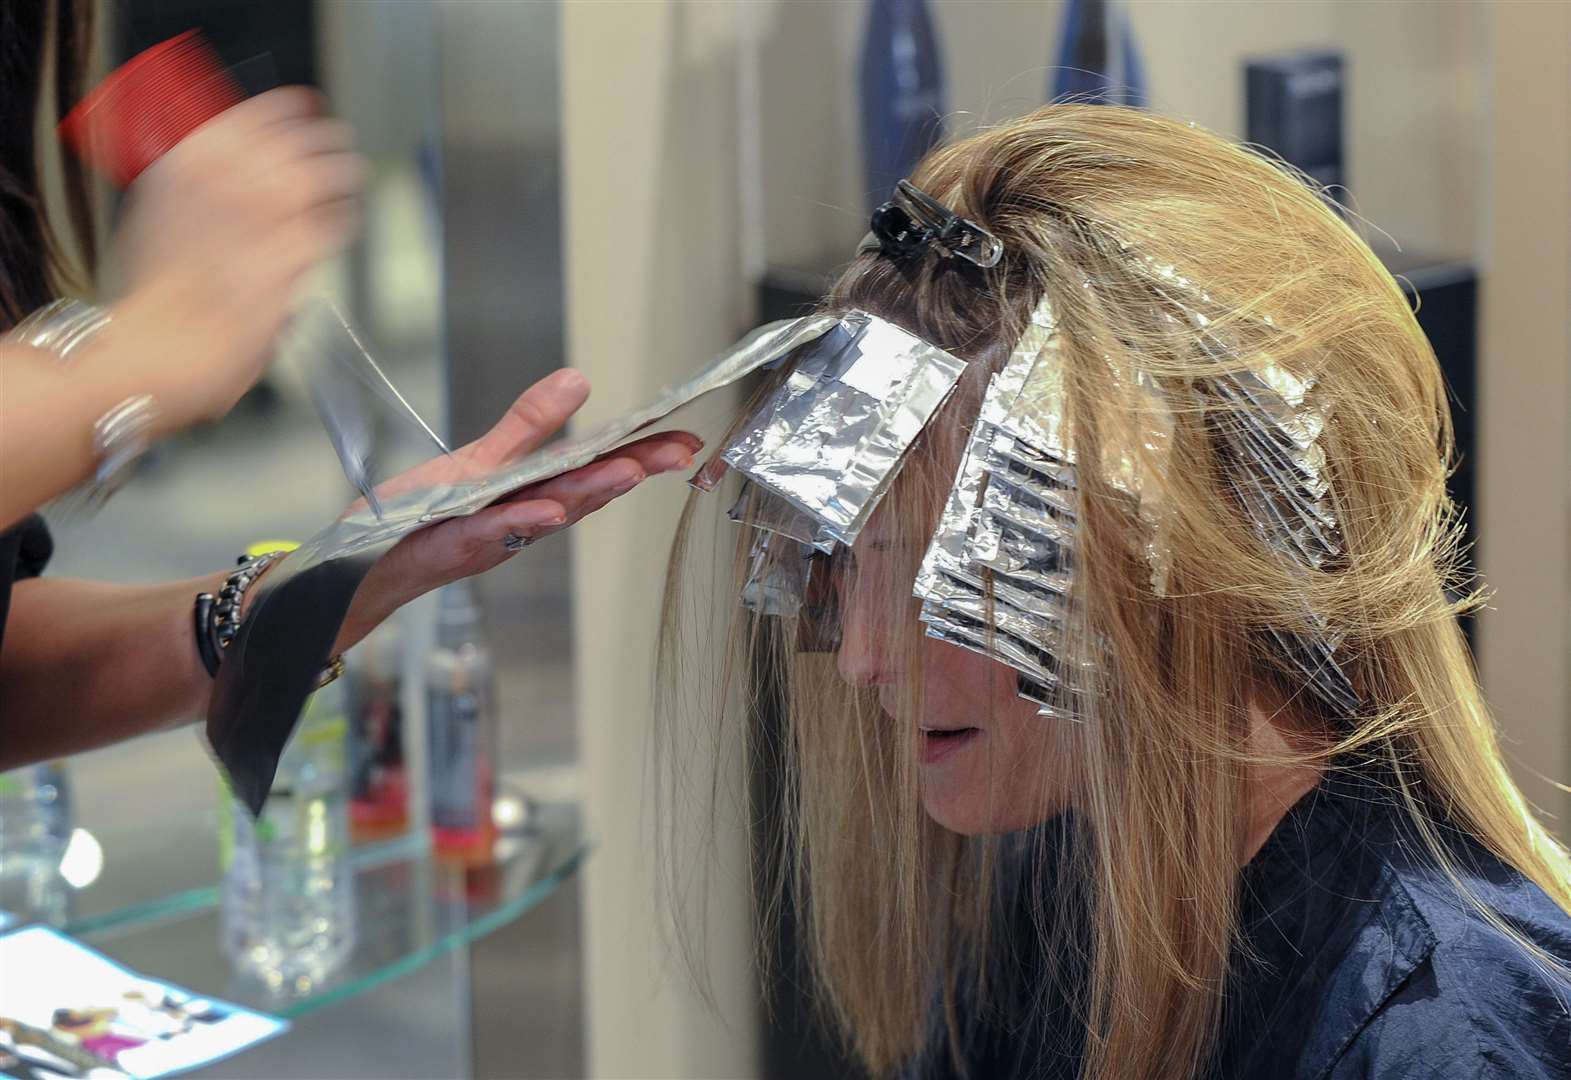 Beauty treats mean a boom in salon openings in Fenland according to figures